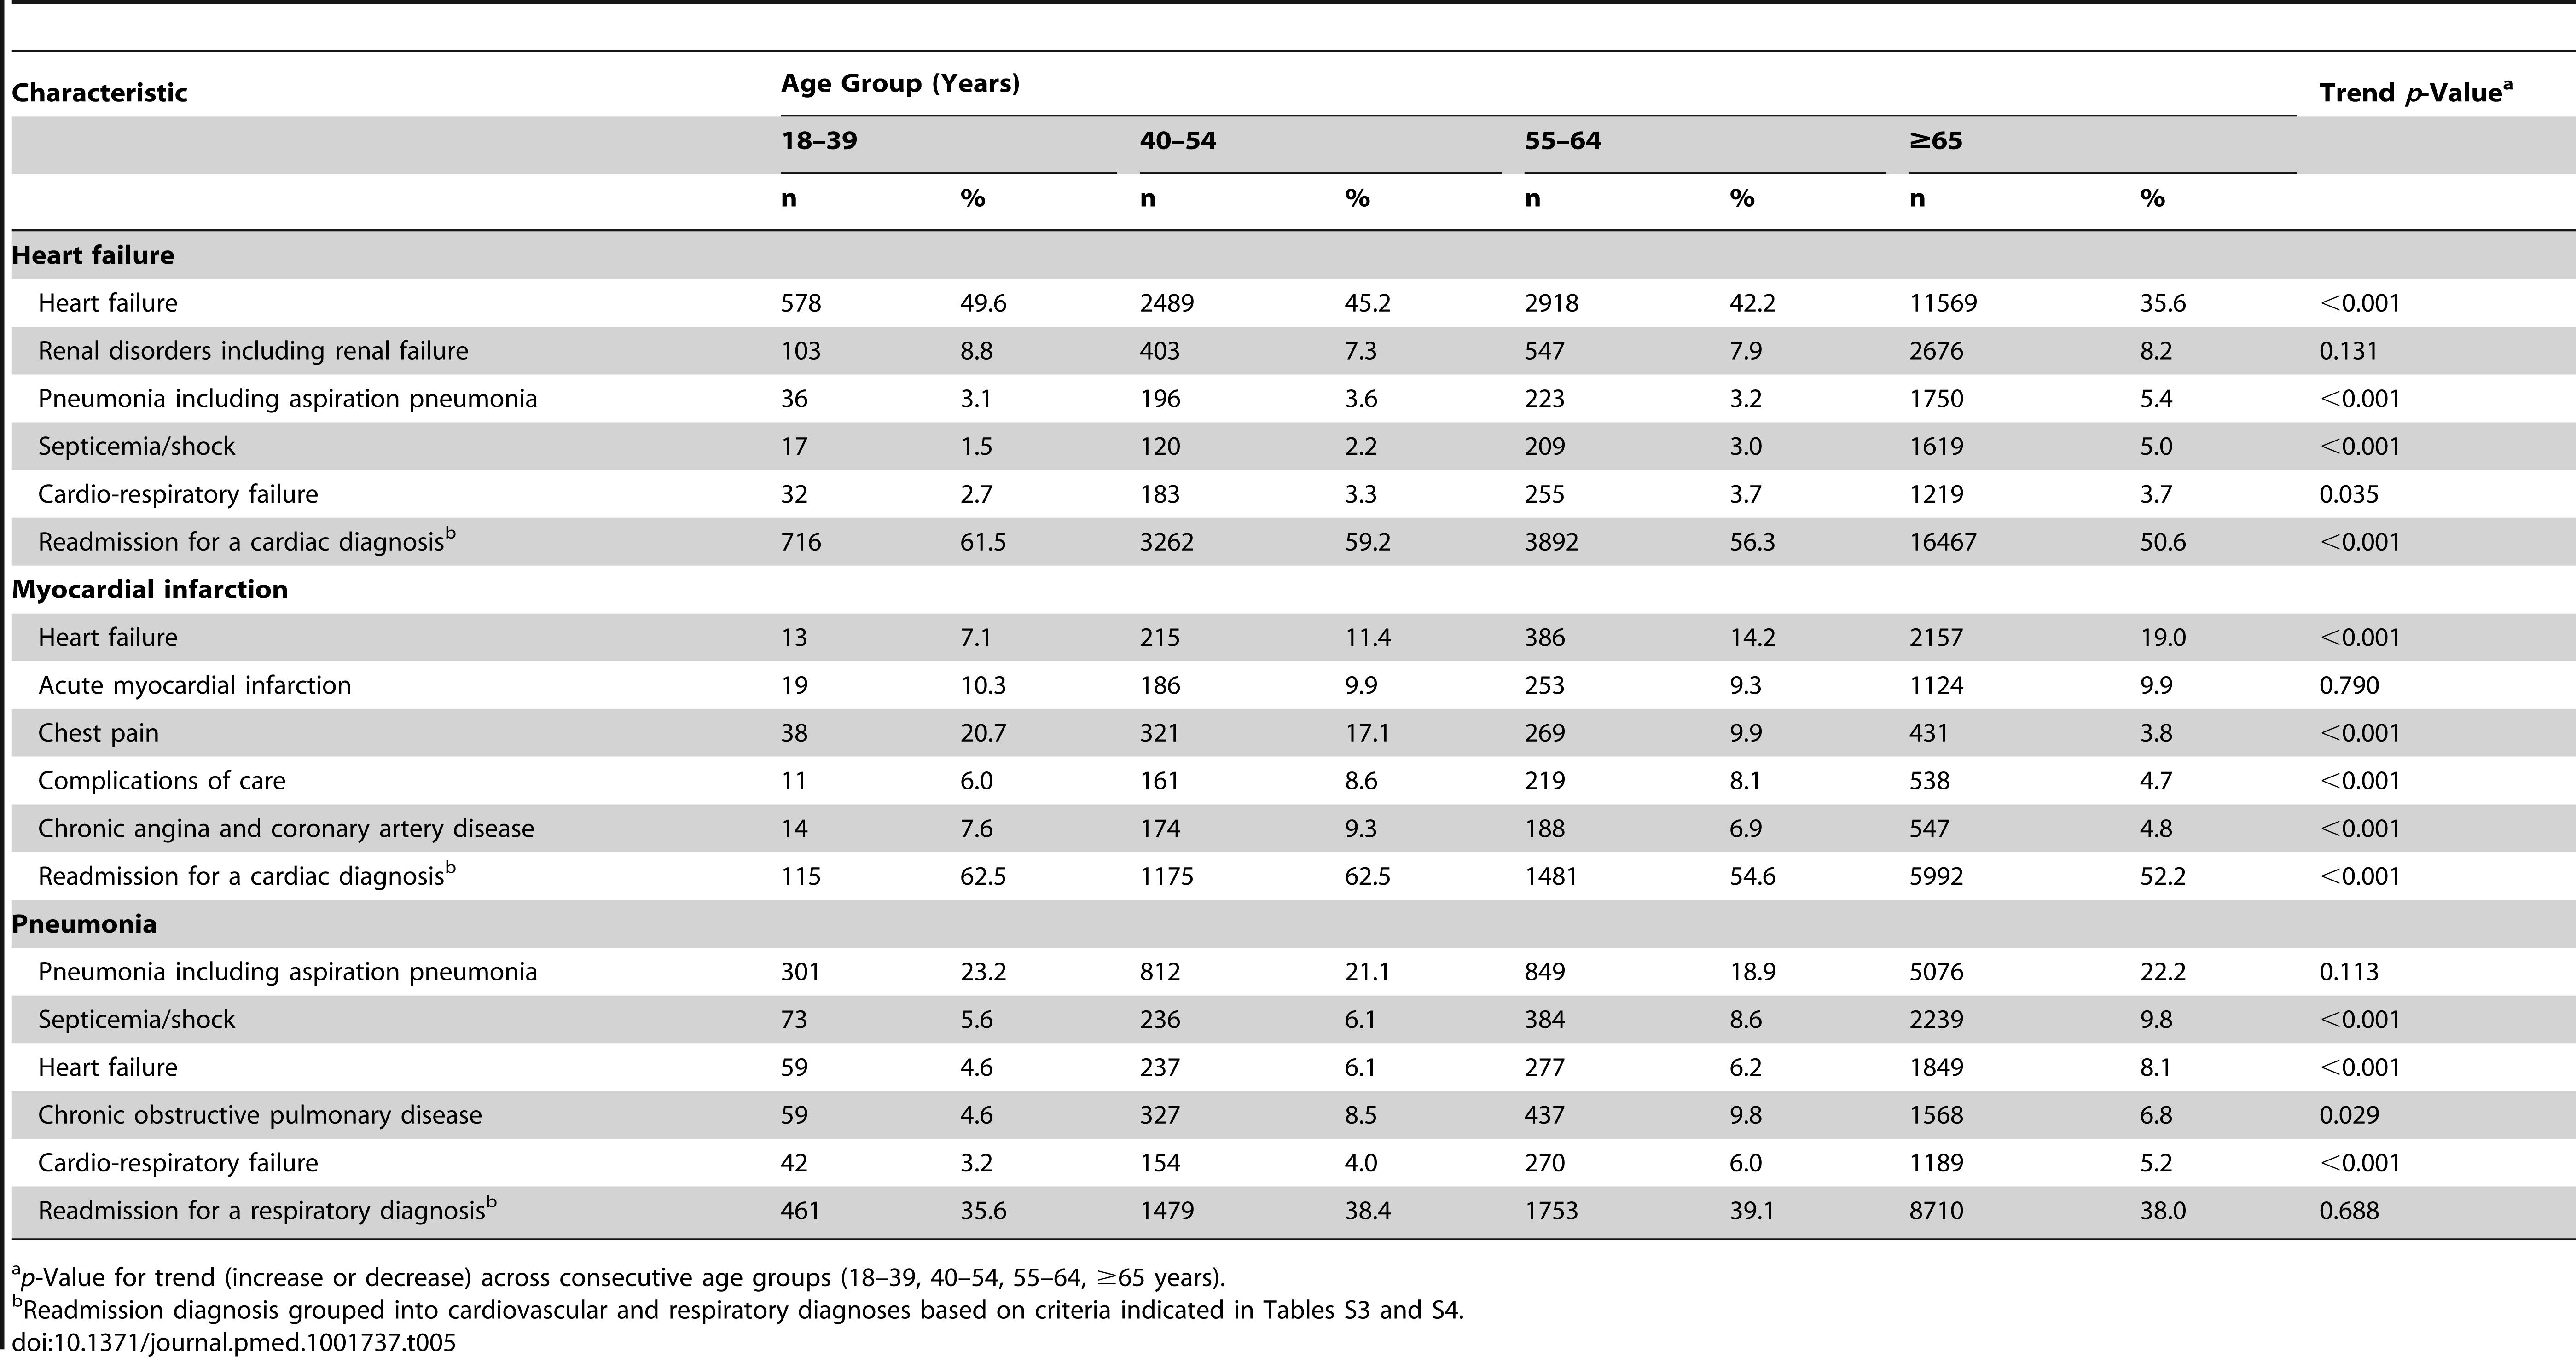 Principal diagnosis at readmission by age group for HF, AMI, and pneumonia.